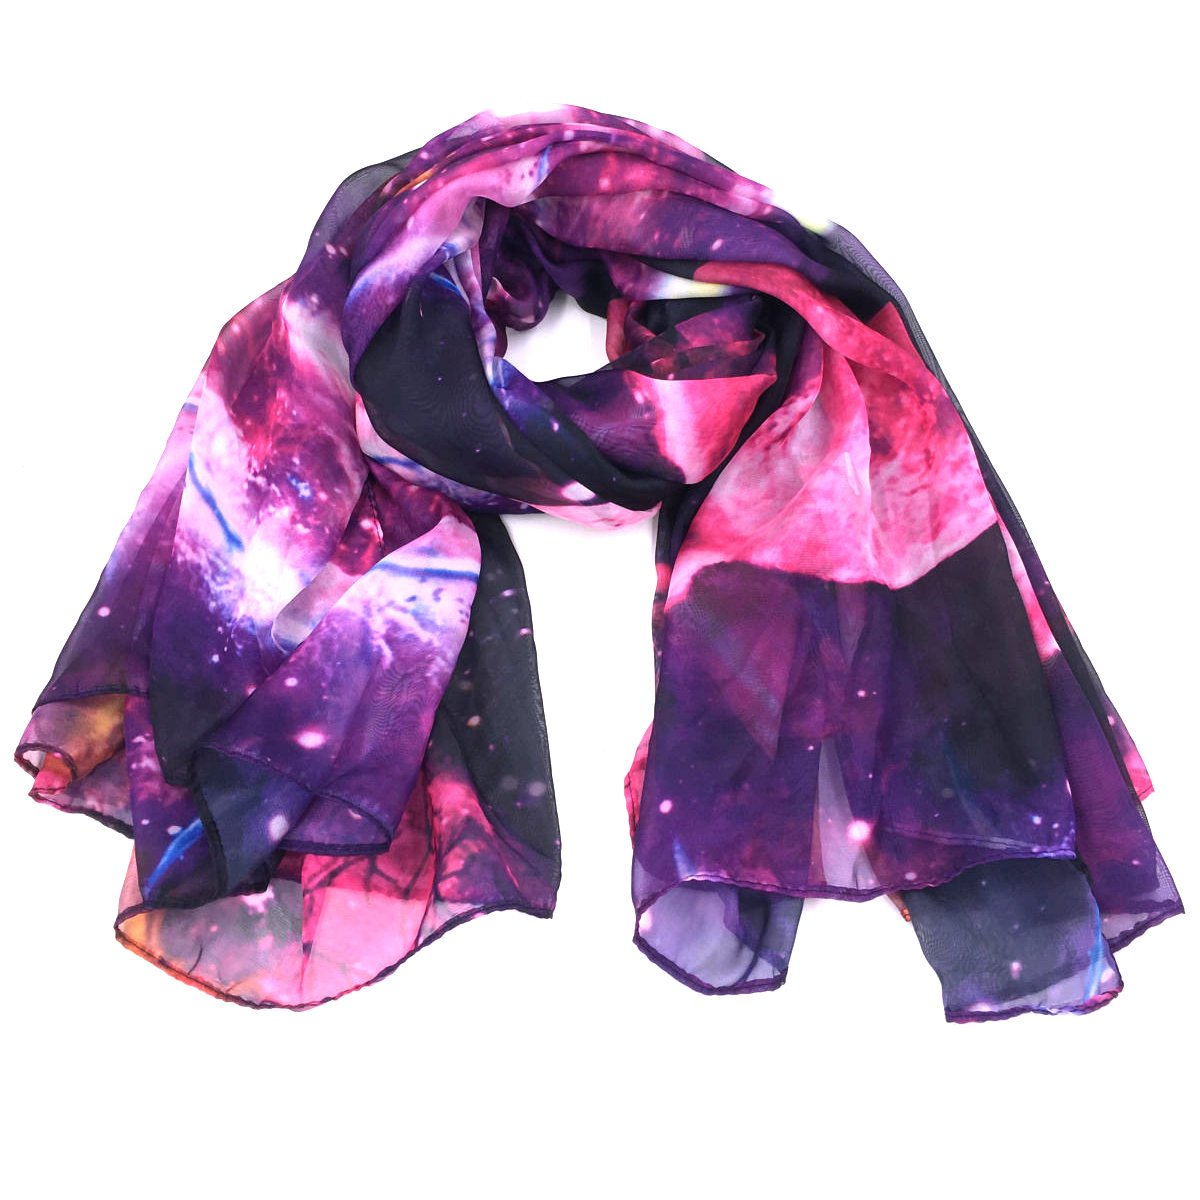 Fashionable Galaxy Star Space Print Large Chiffon Scarf - Purple